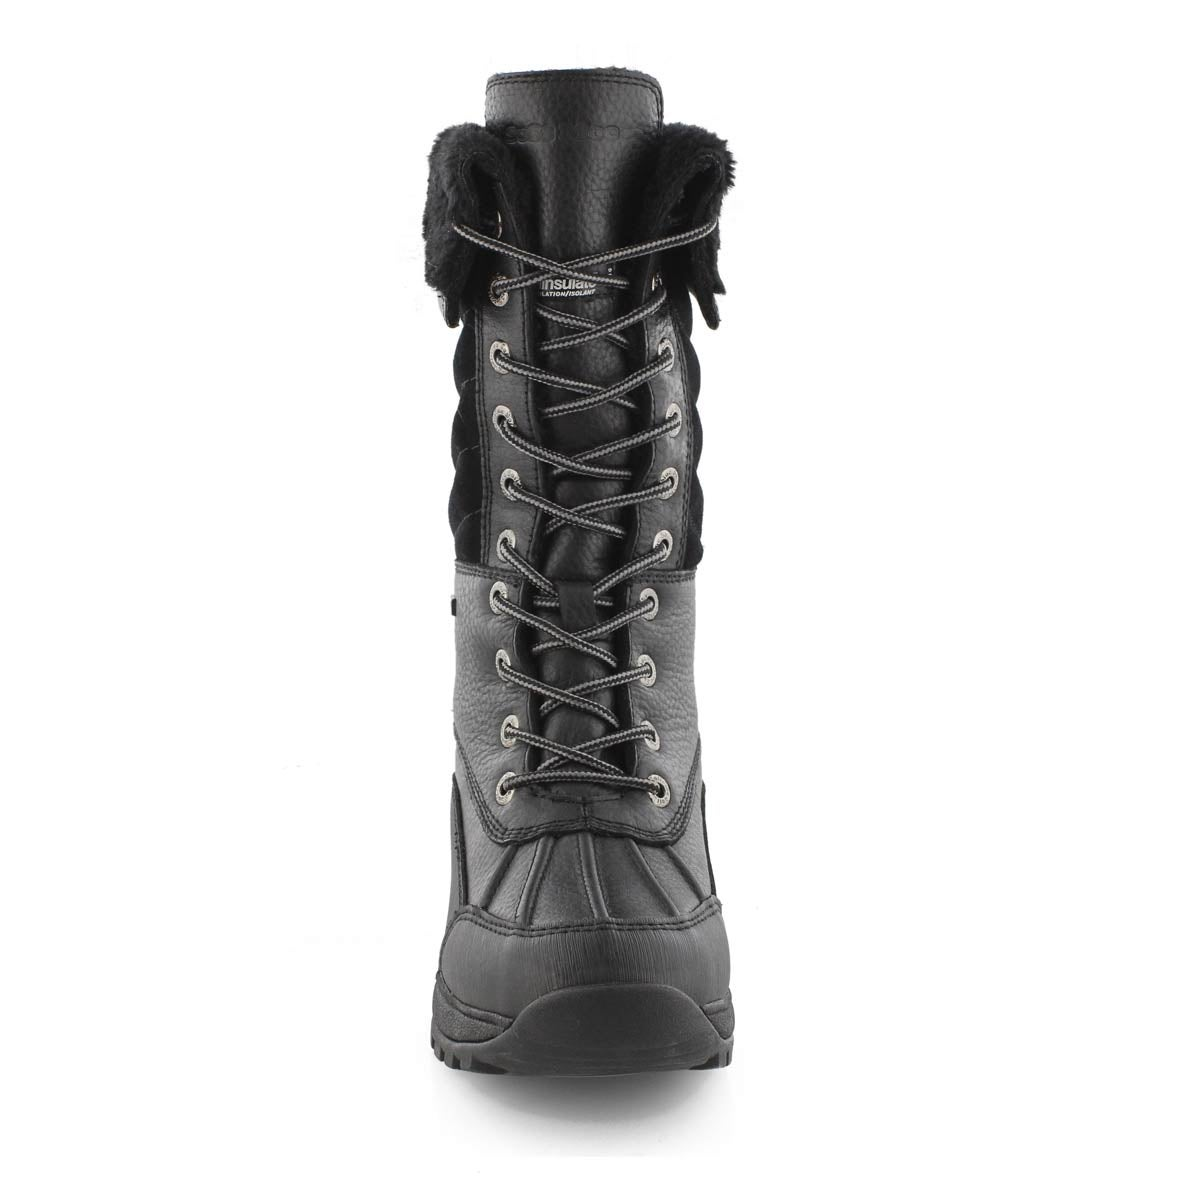 Lds Shakira Tall 2 blk wtpf winter boot